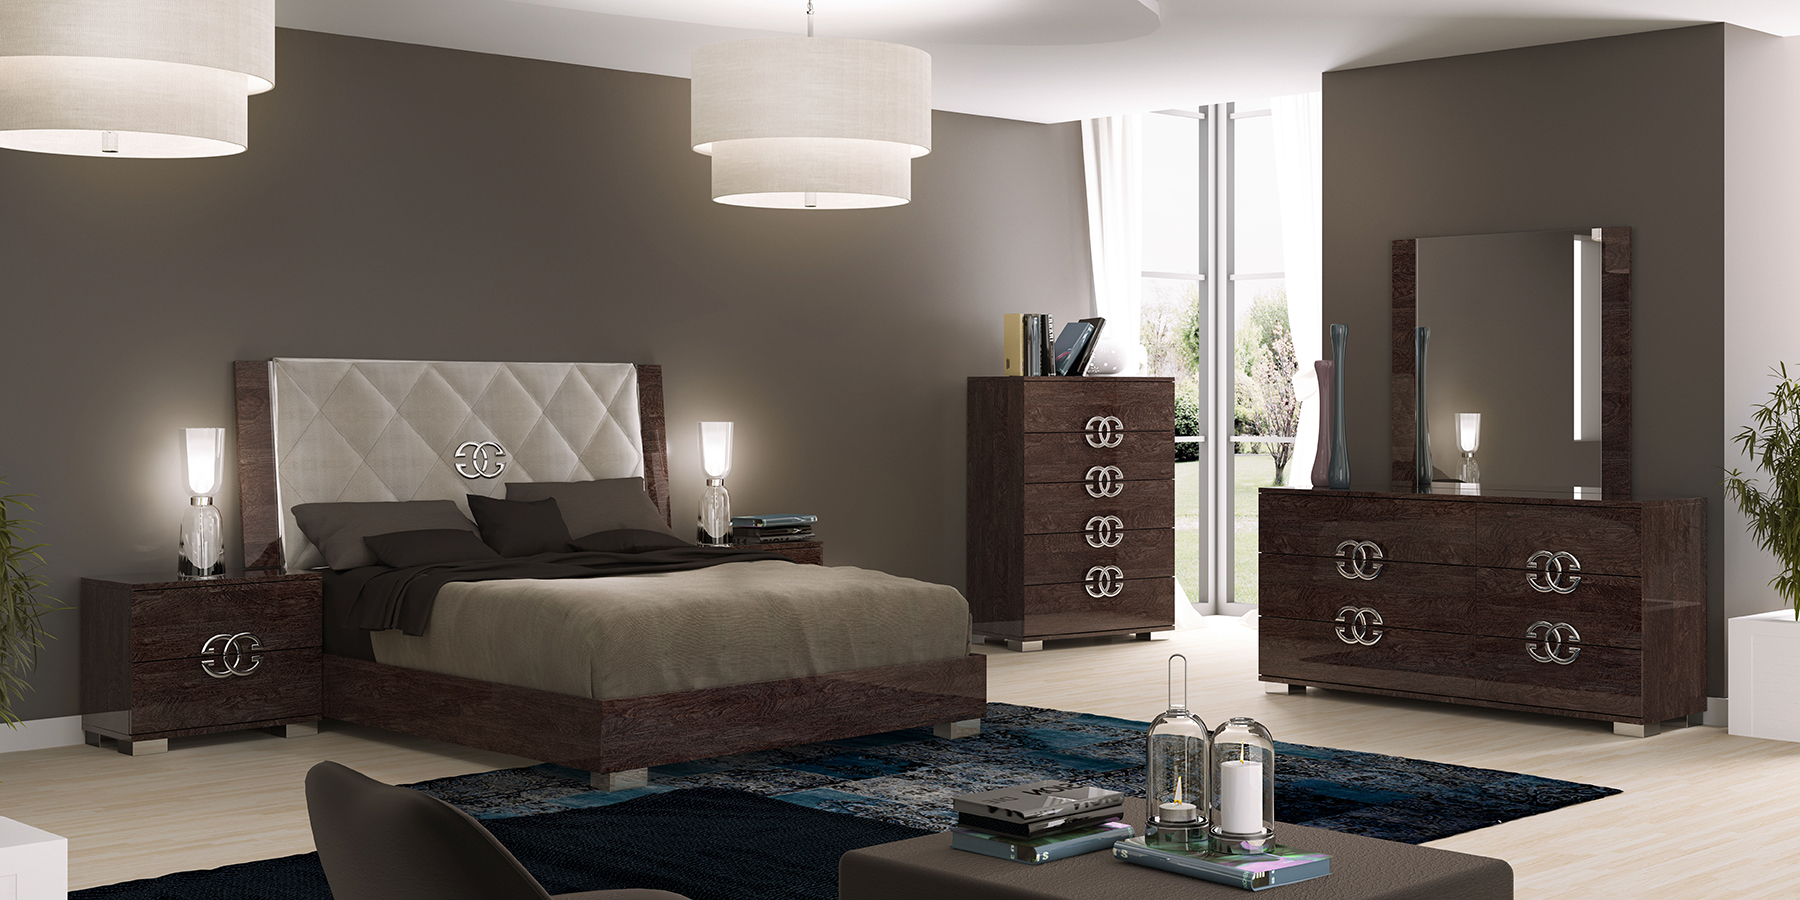 Prestige deluxe modern bedrooms bedroom furniture for Bedroom ideas with furniture